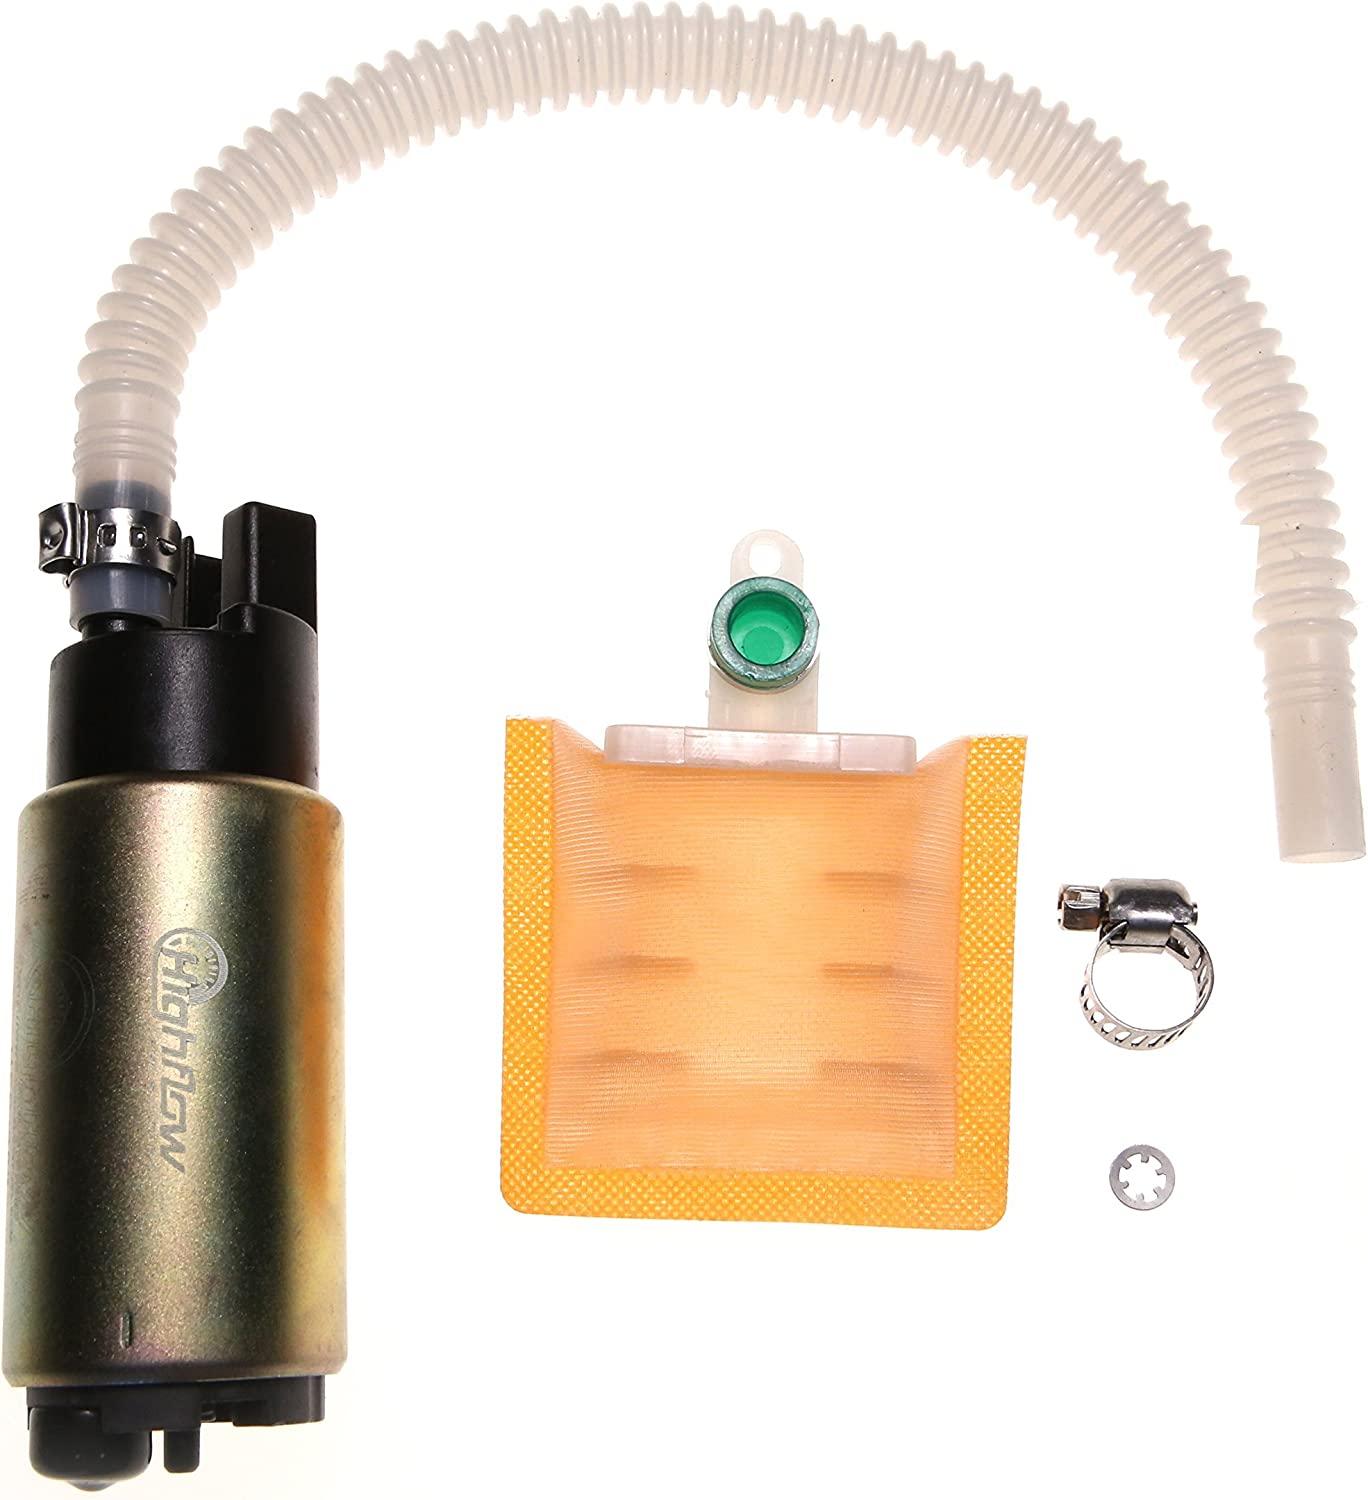 FLHP FLHTP FLHRSEI FLTRI FLHR FLHRSEI FLHPEI FLHTPI FLHR 2000-2007 HFP-382-HD Motorcycle Fuel Pump with Installation Kit Replacement for HD Night Train//Police//Road Glide//Road King//Road Touring